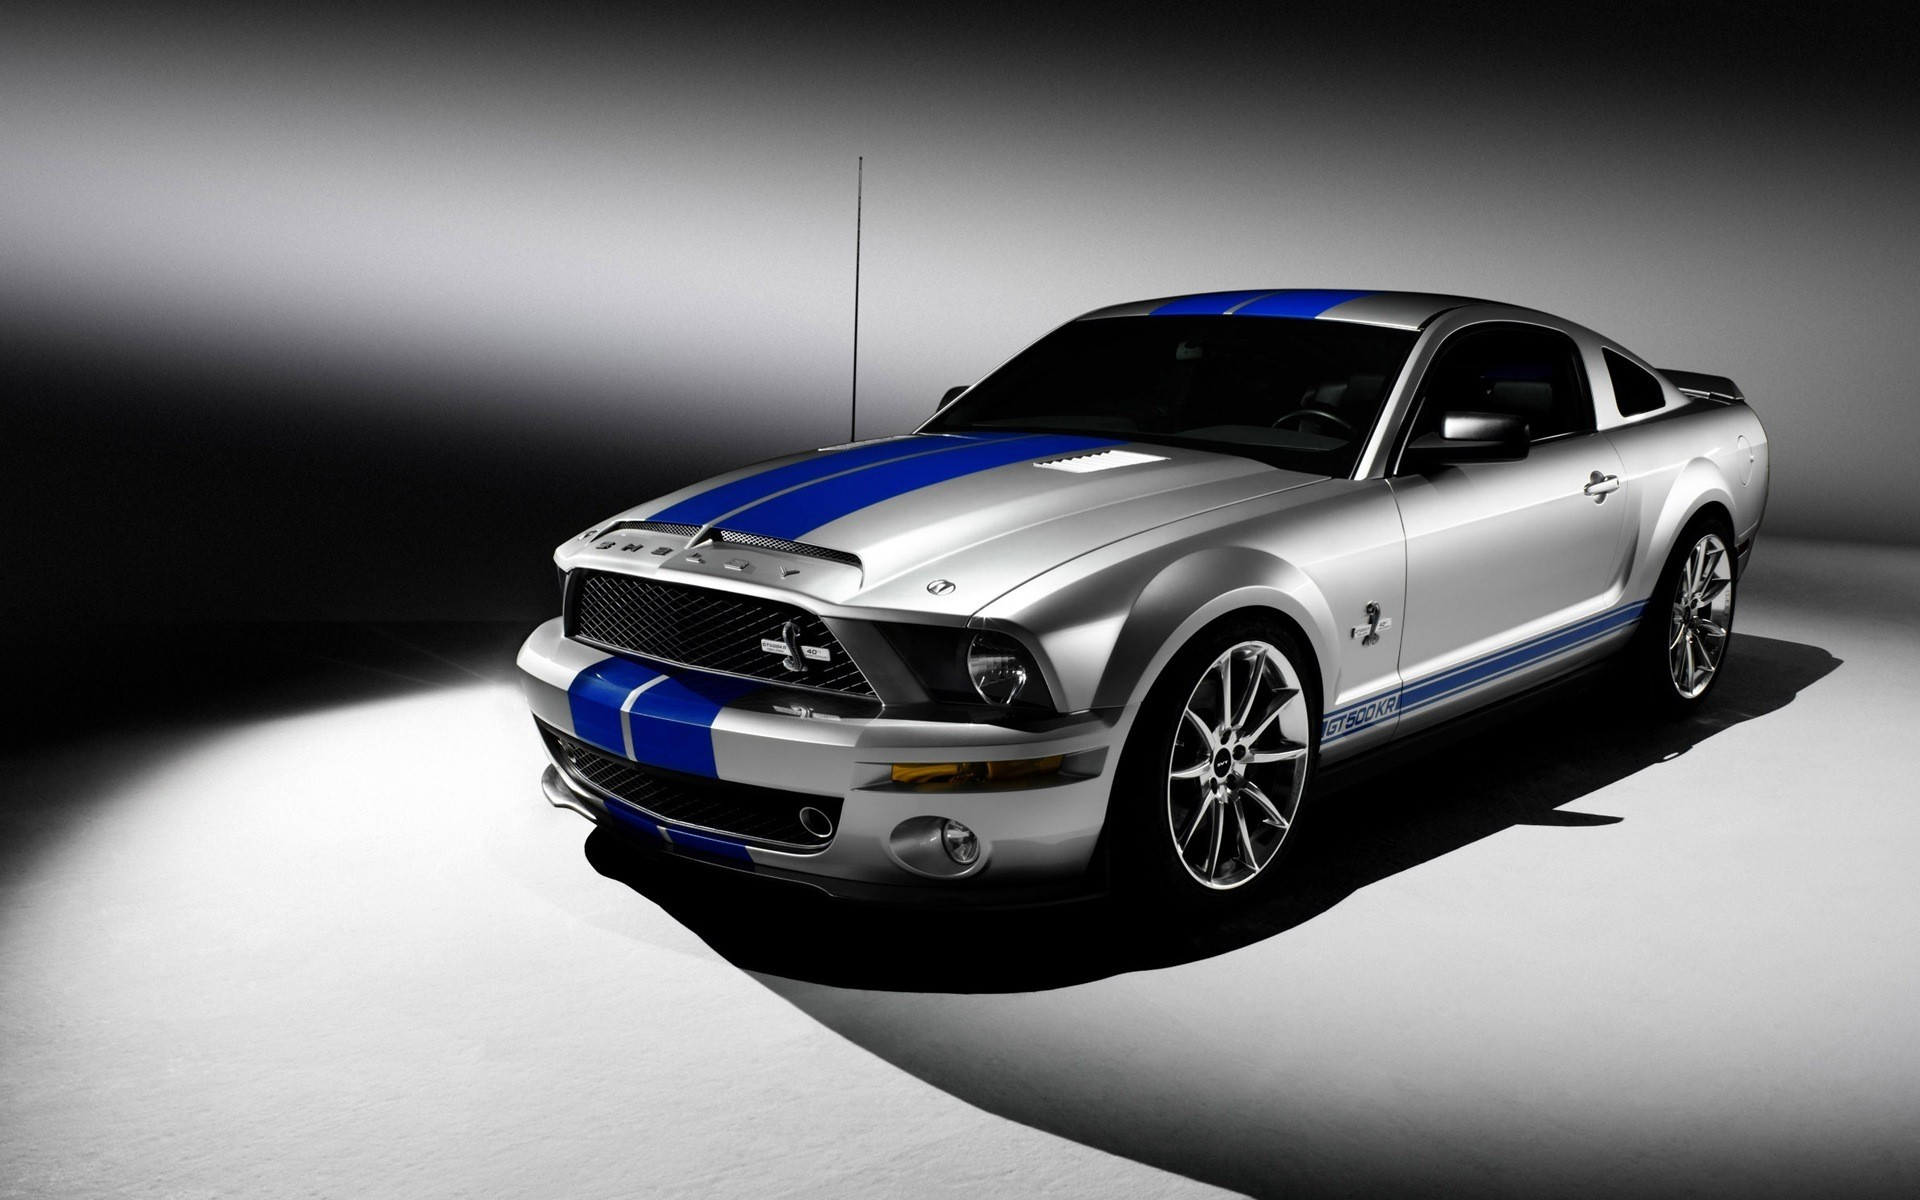 Ford Mustang GT Exclusive HD Wallpapers 1350 1920x1200